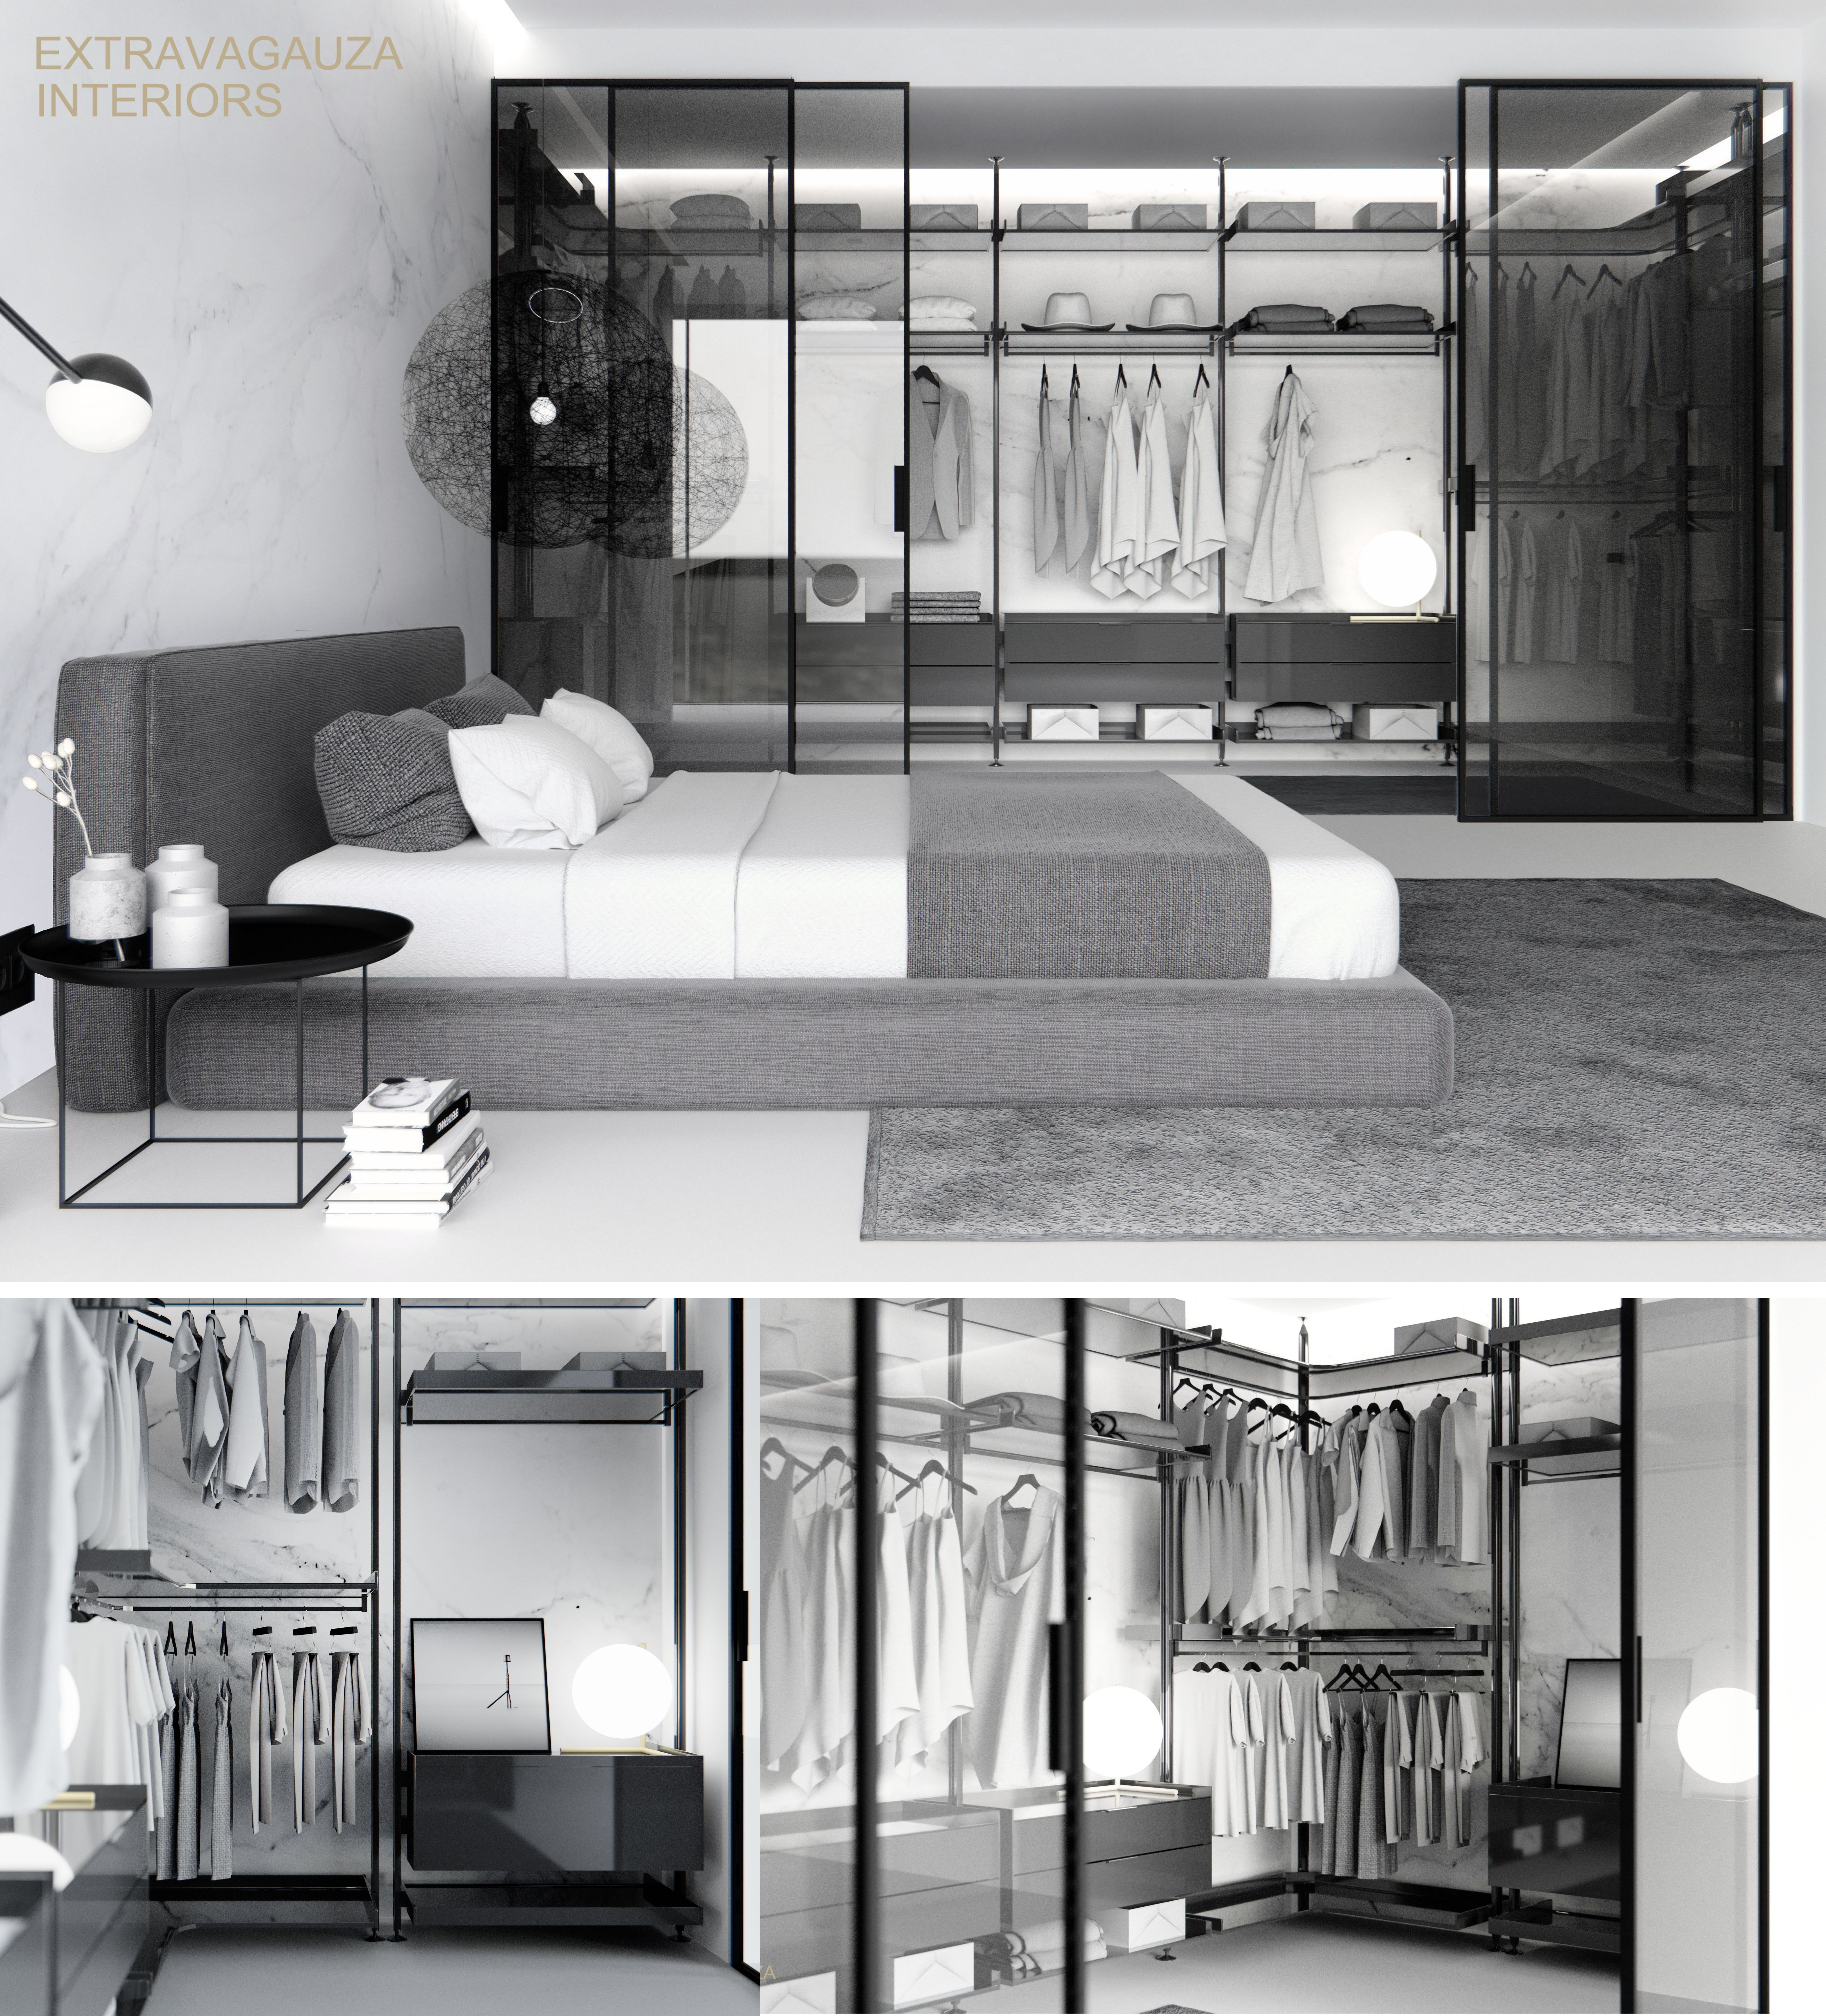 Extravagauza Interiors | Contemporary minimalist bedroom design  www.extravagauza.co.uk